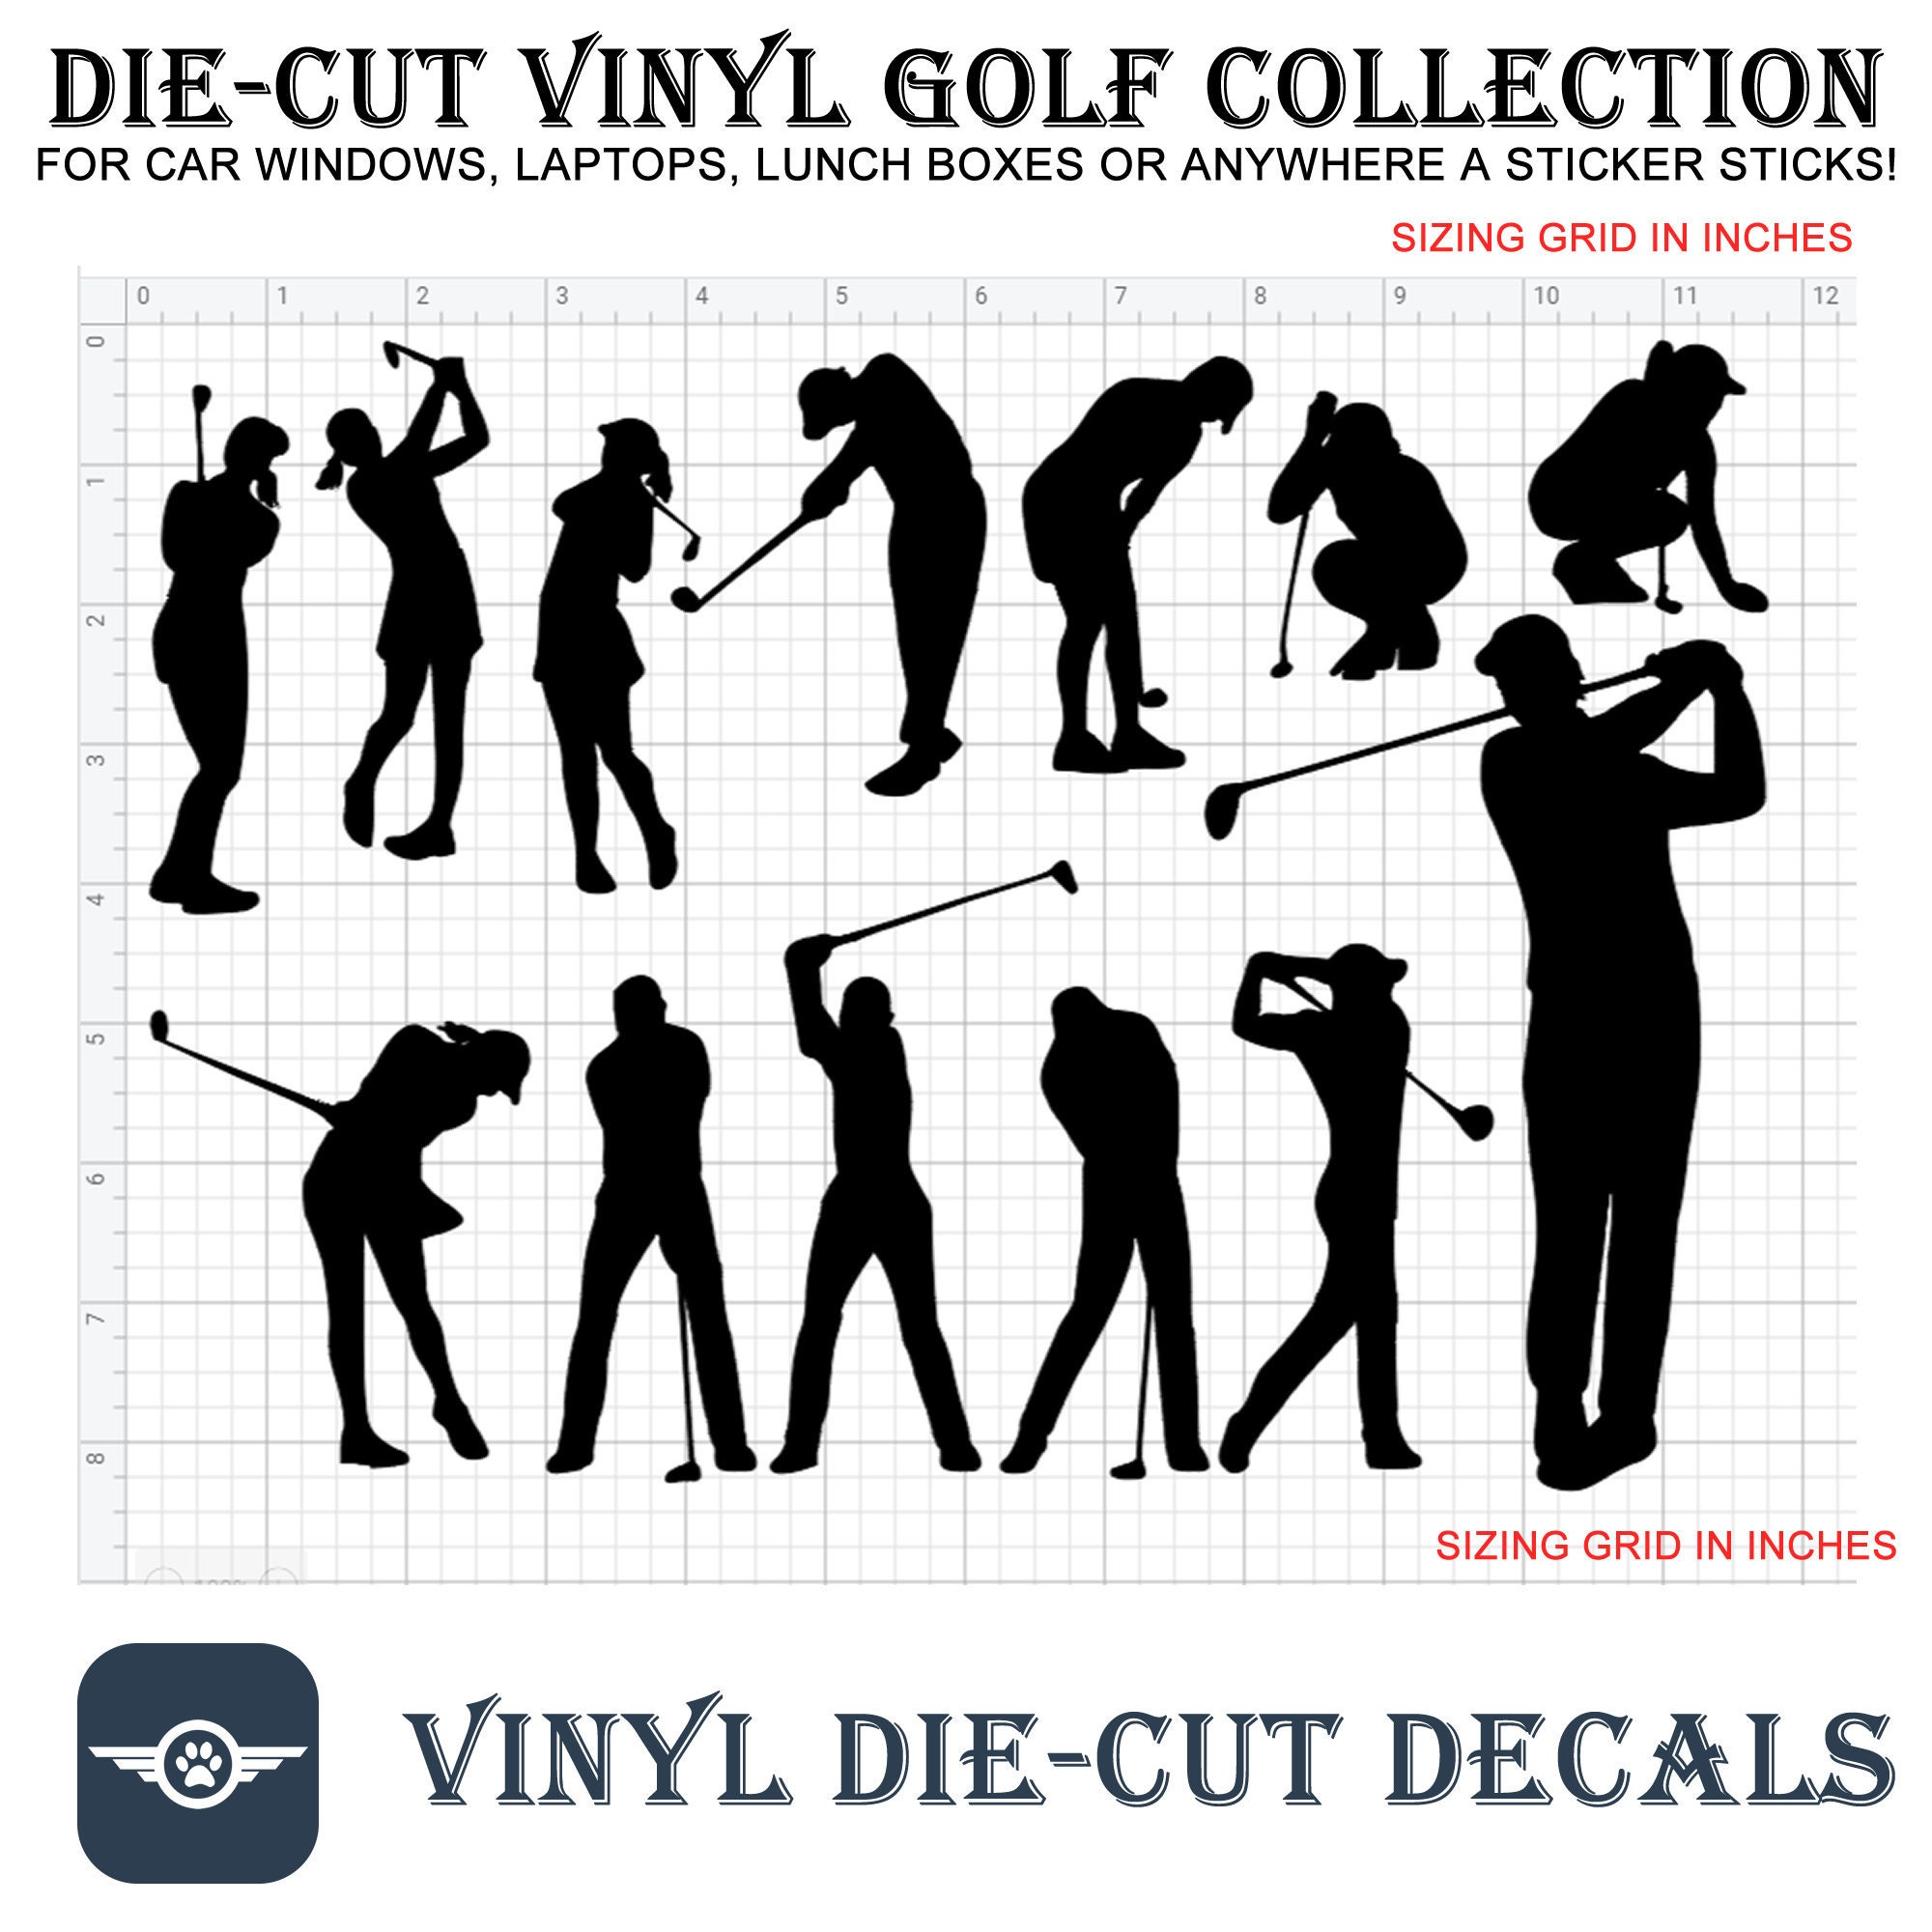 CAD$11.84 - 13 Golf Vinyl die-cut decals in different colors even chrome see image for sizing and contact for sizes not shown